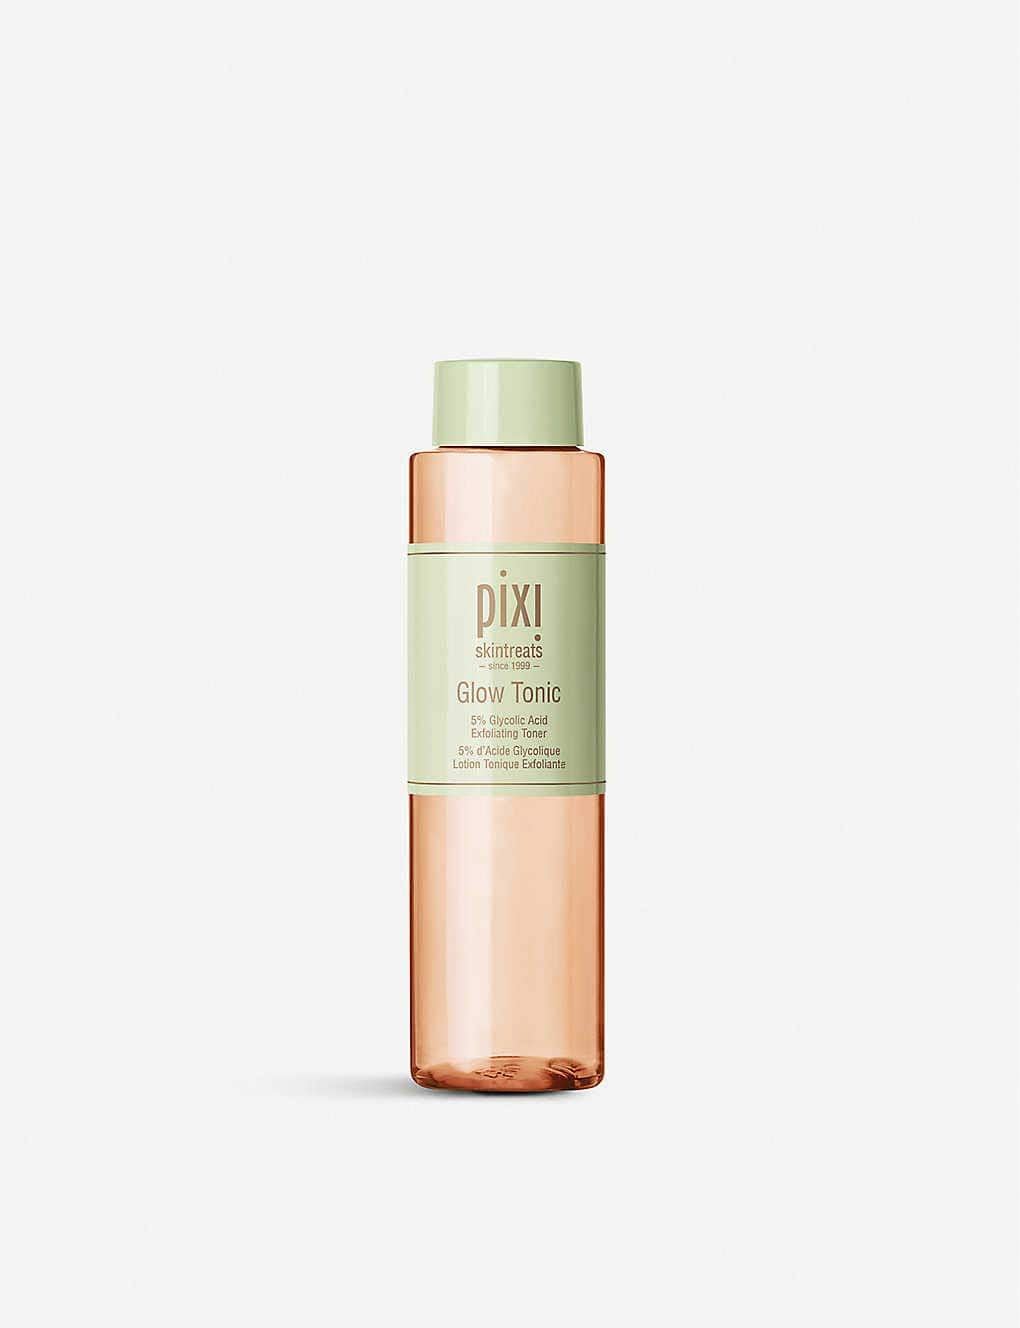 20 Best Toners For Oily Skin And Large Pores in 2020